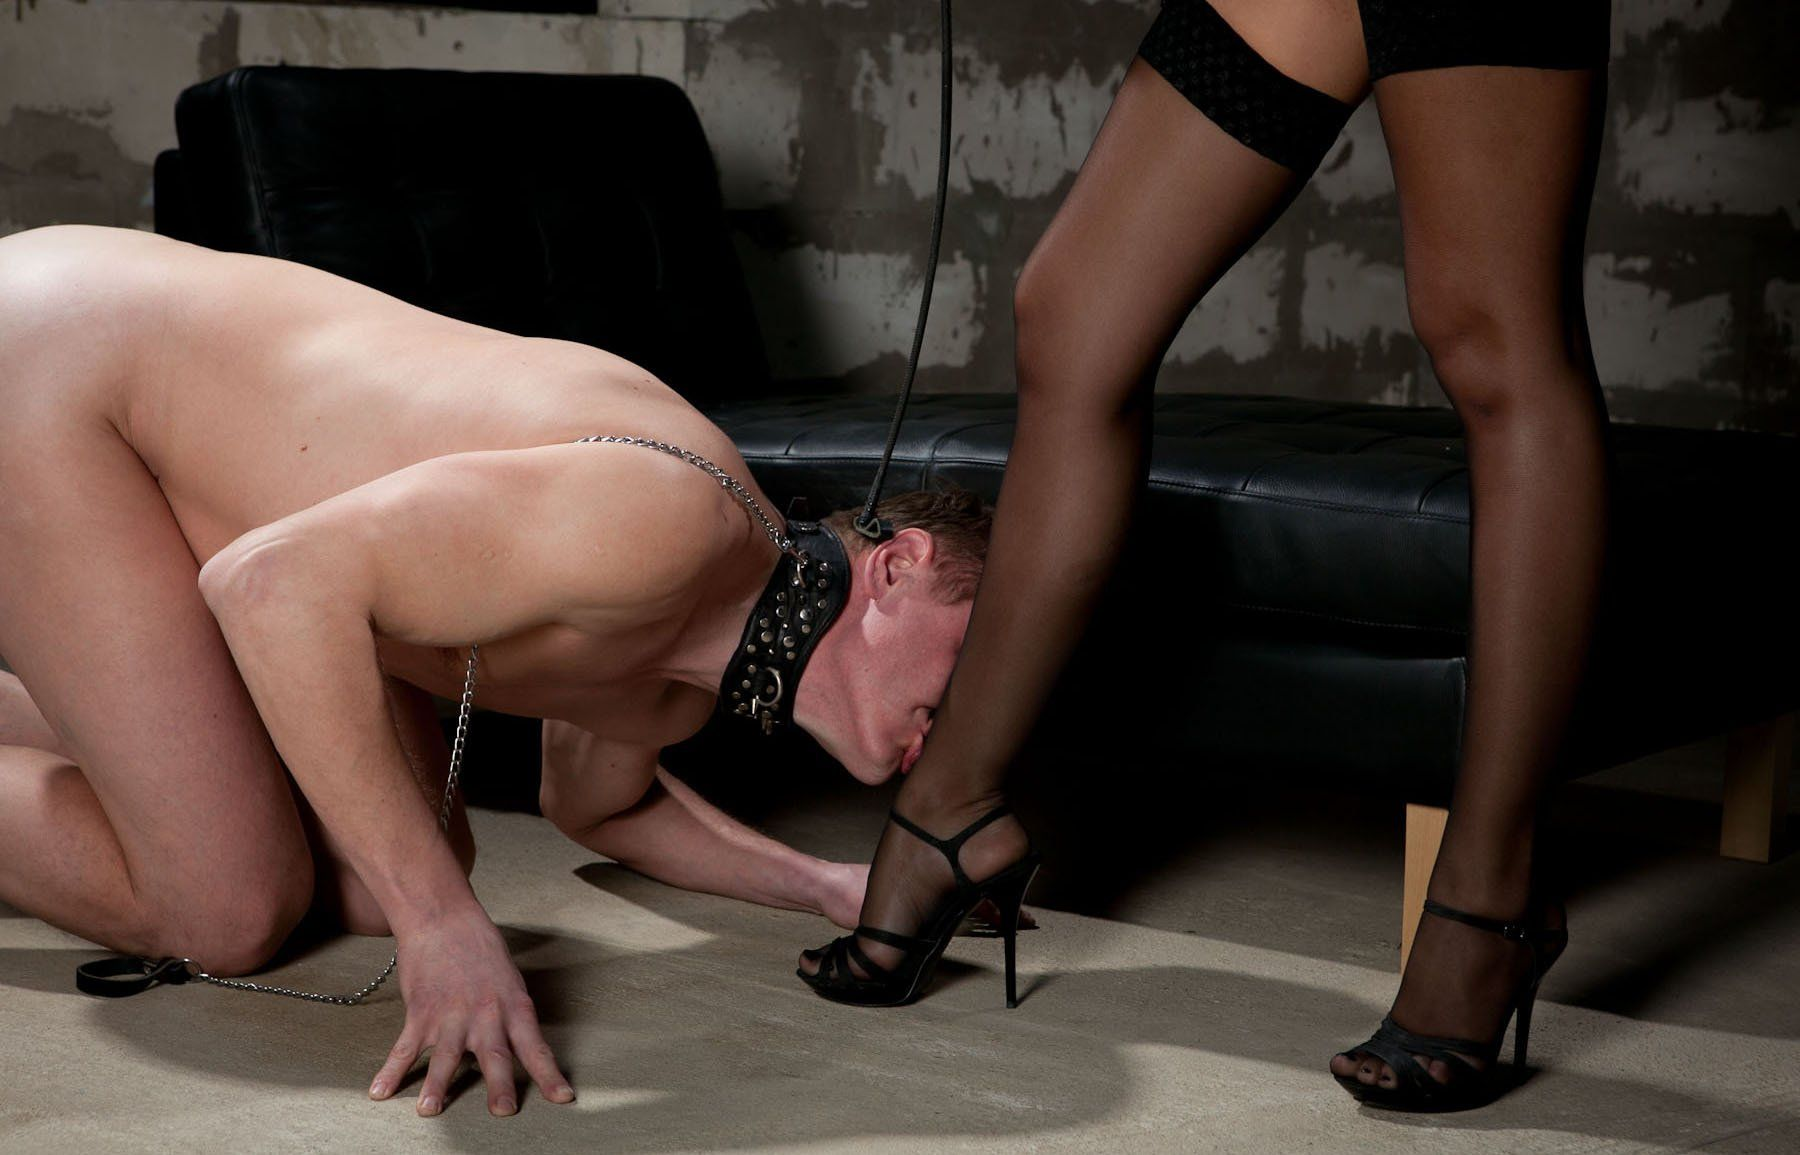 quite can sissy boy gay swallow riding hard cock in the office remarkable, rather amusing